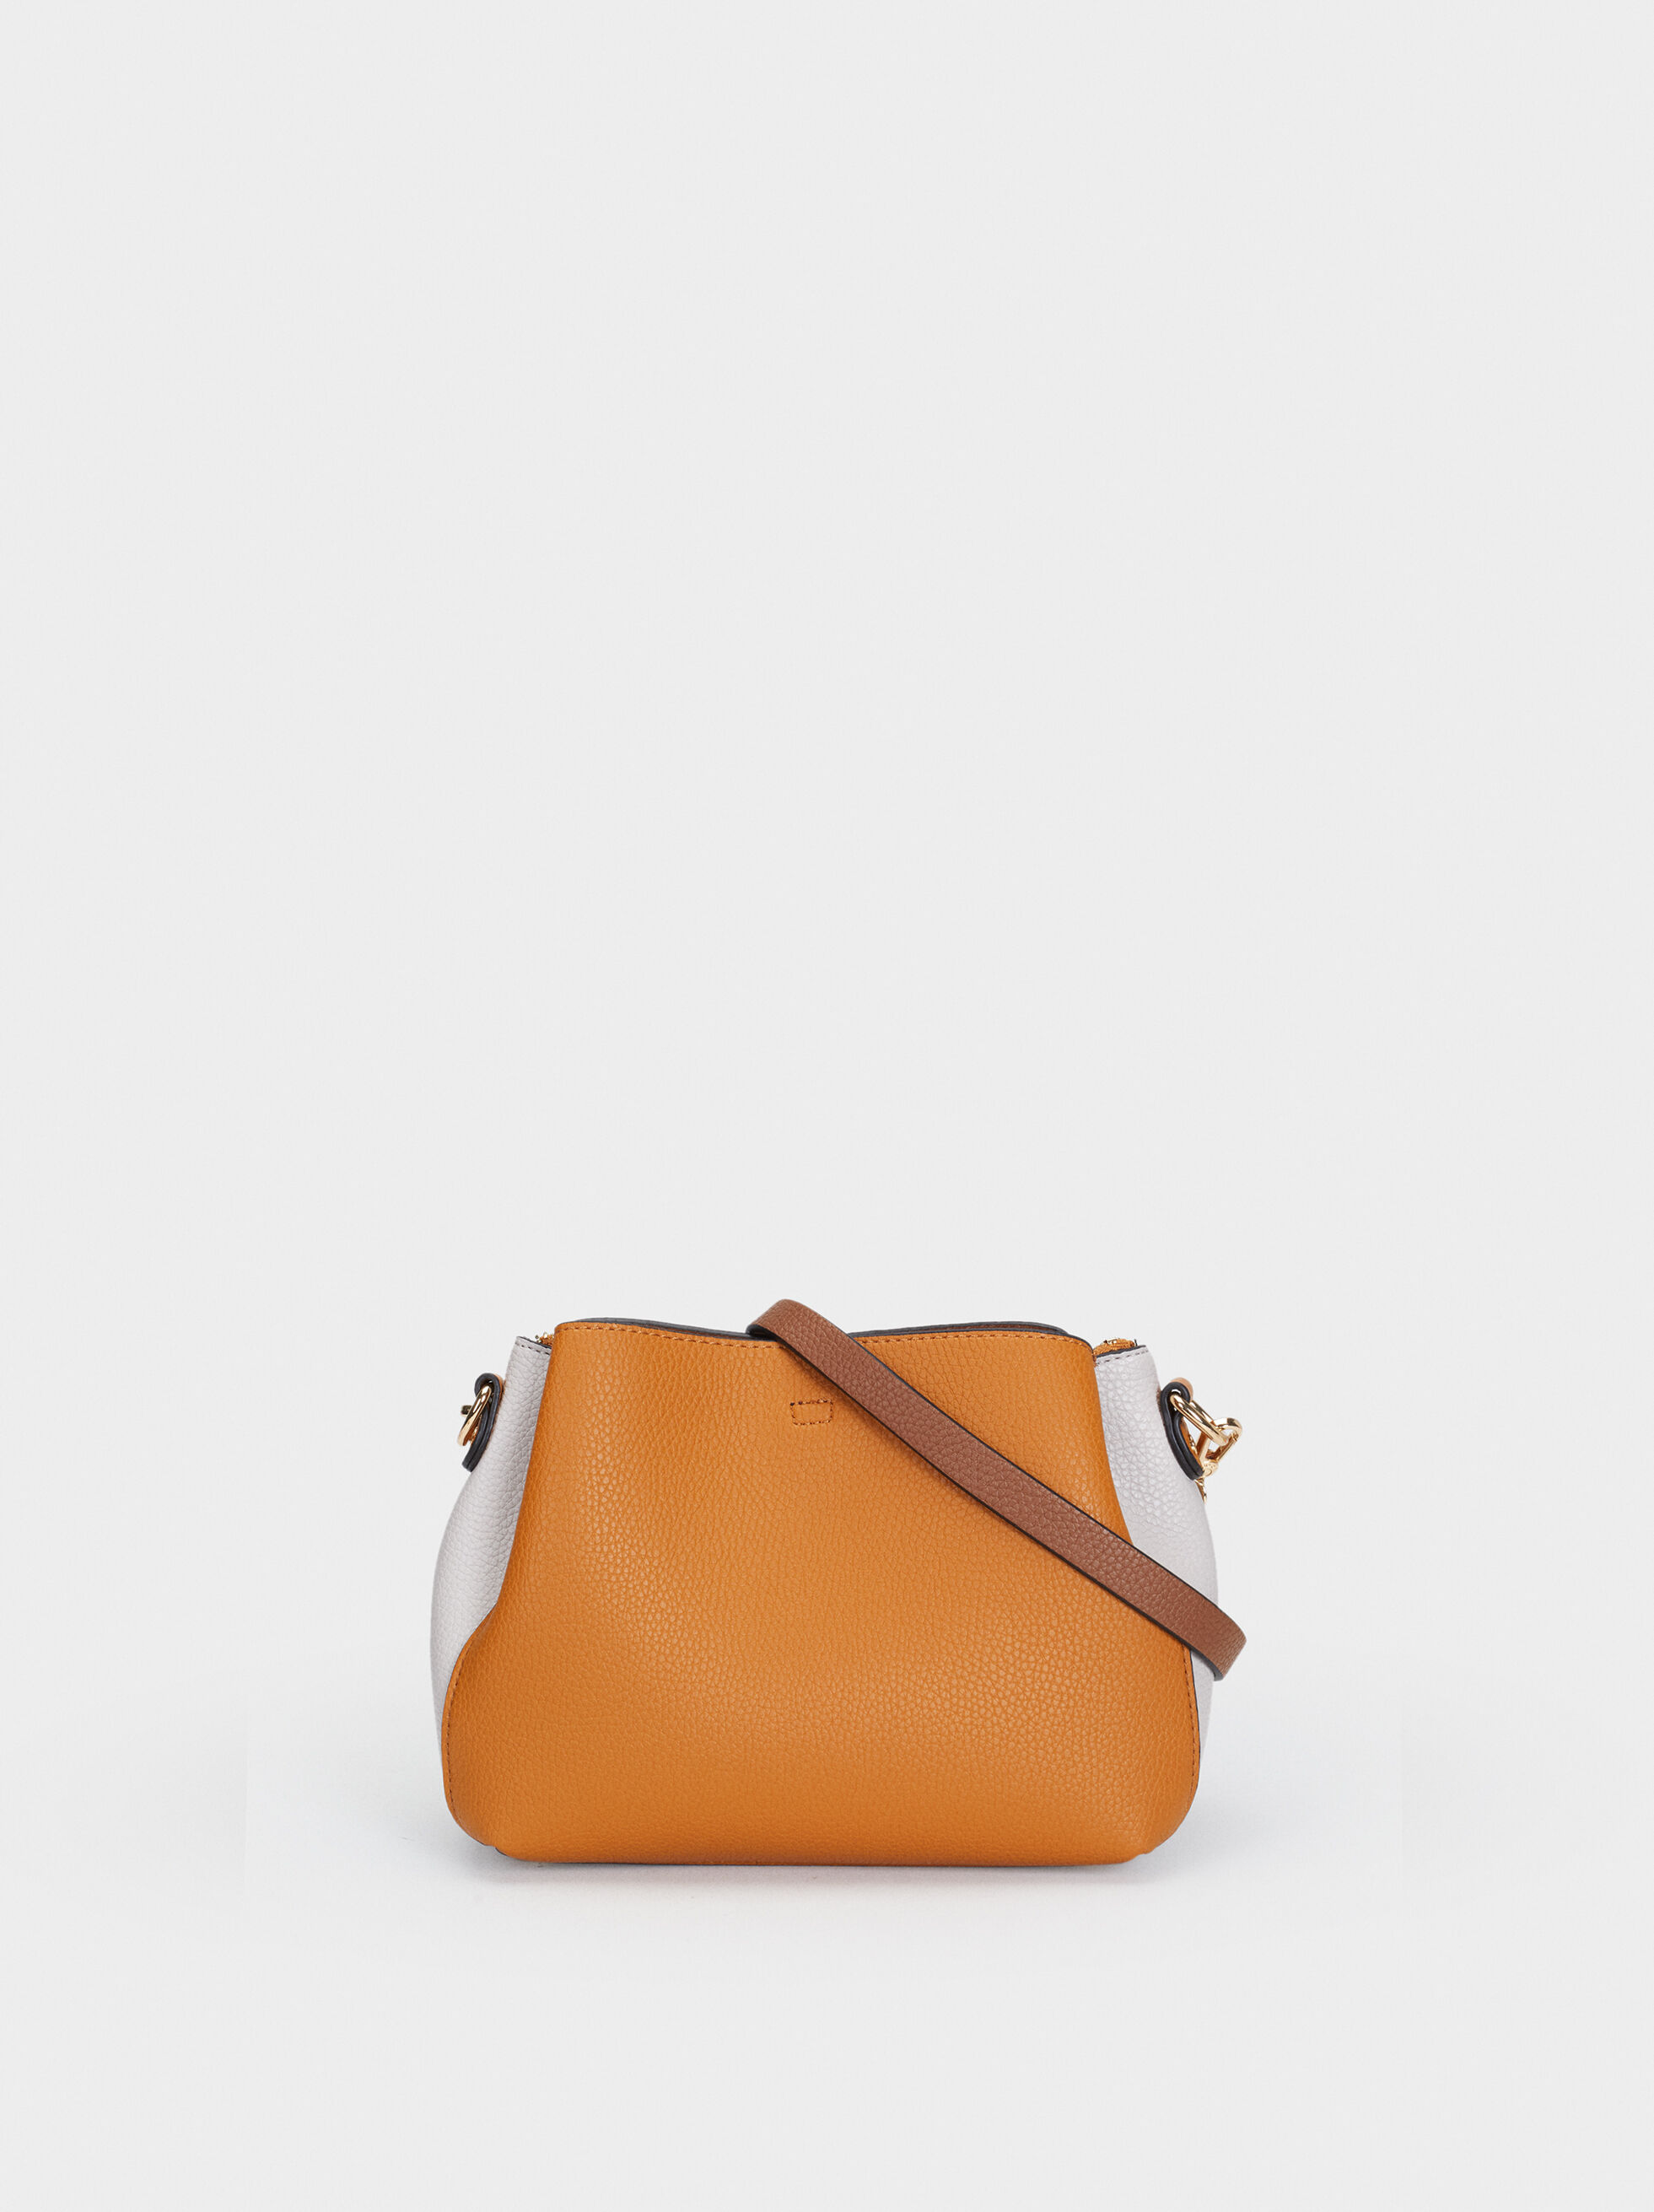 Embossed Shoulder Bag, Mustard, hi-res